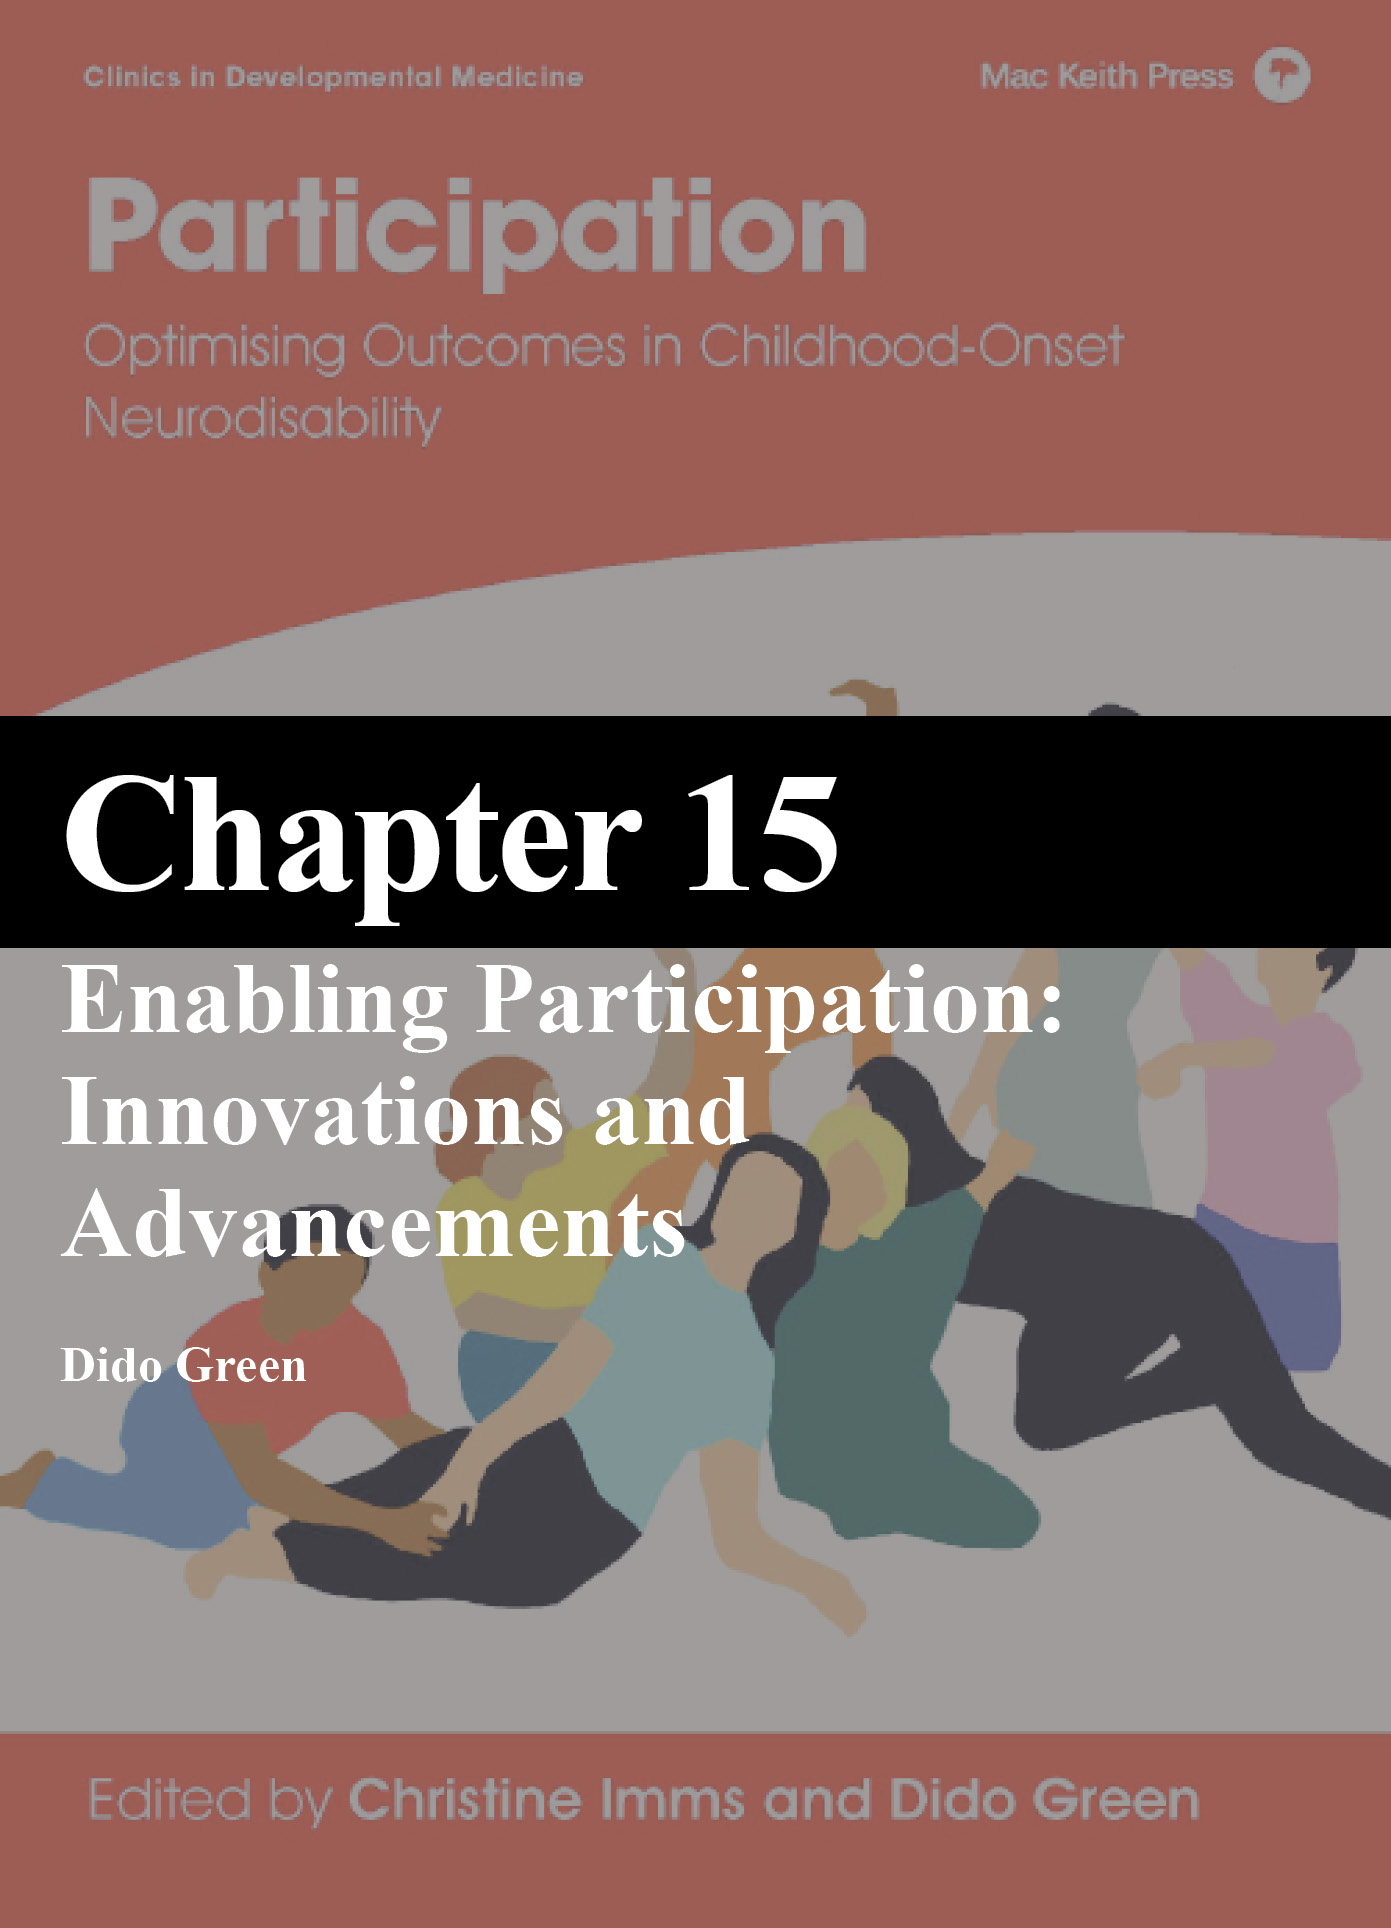 Participation Chapter 15 Imms Green